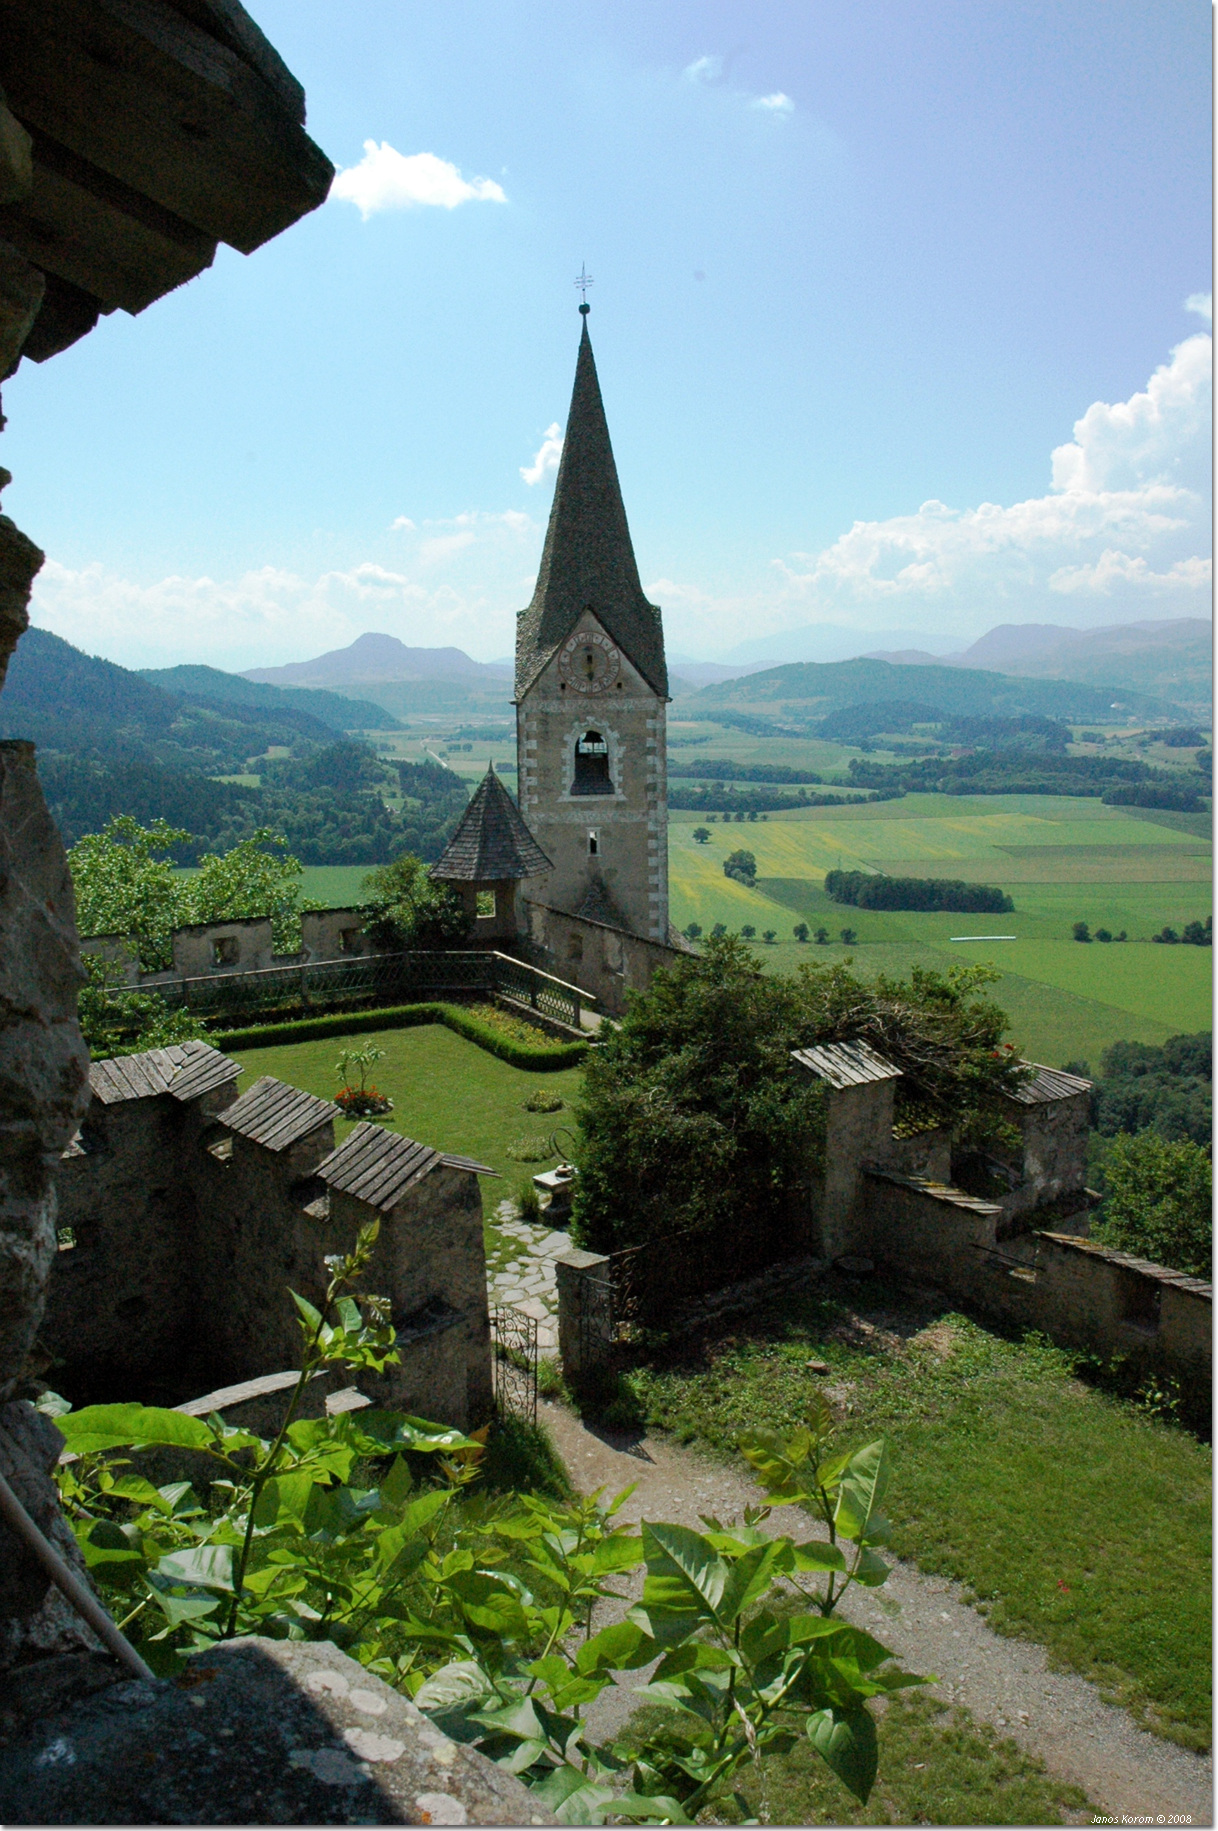 From Hochosterwitz there is a stunning view of Carinthia in Austria.